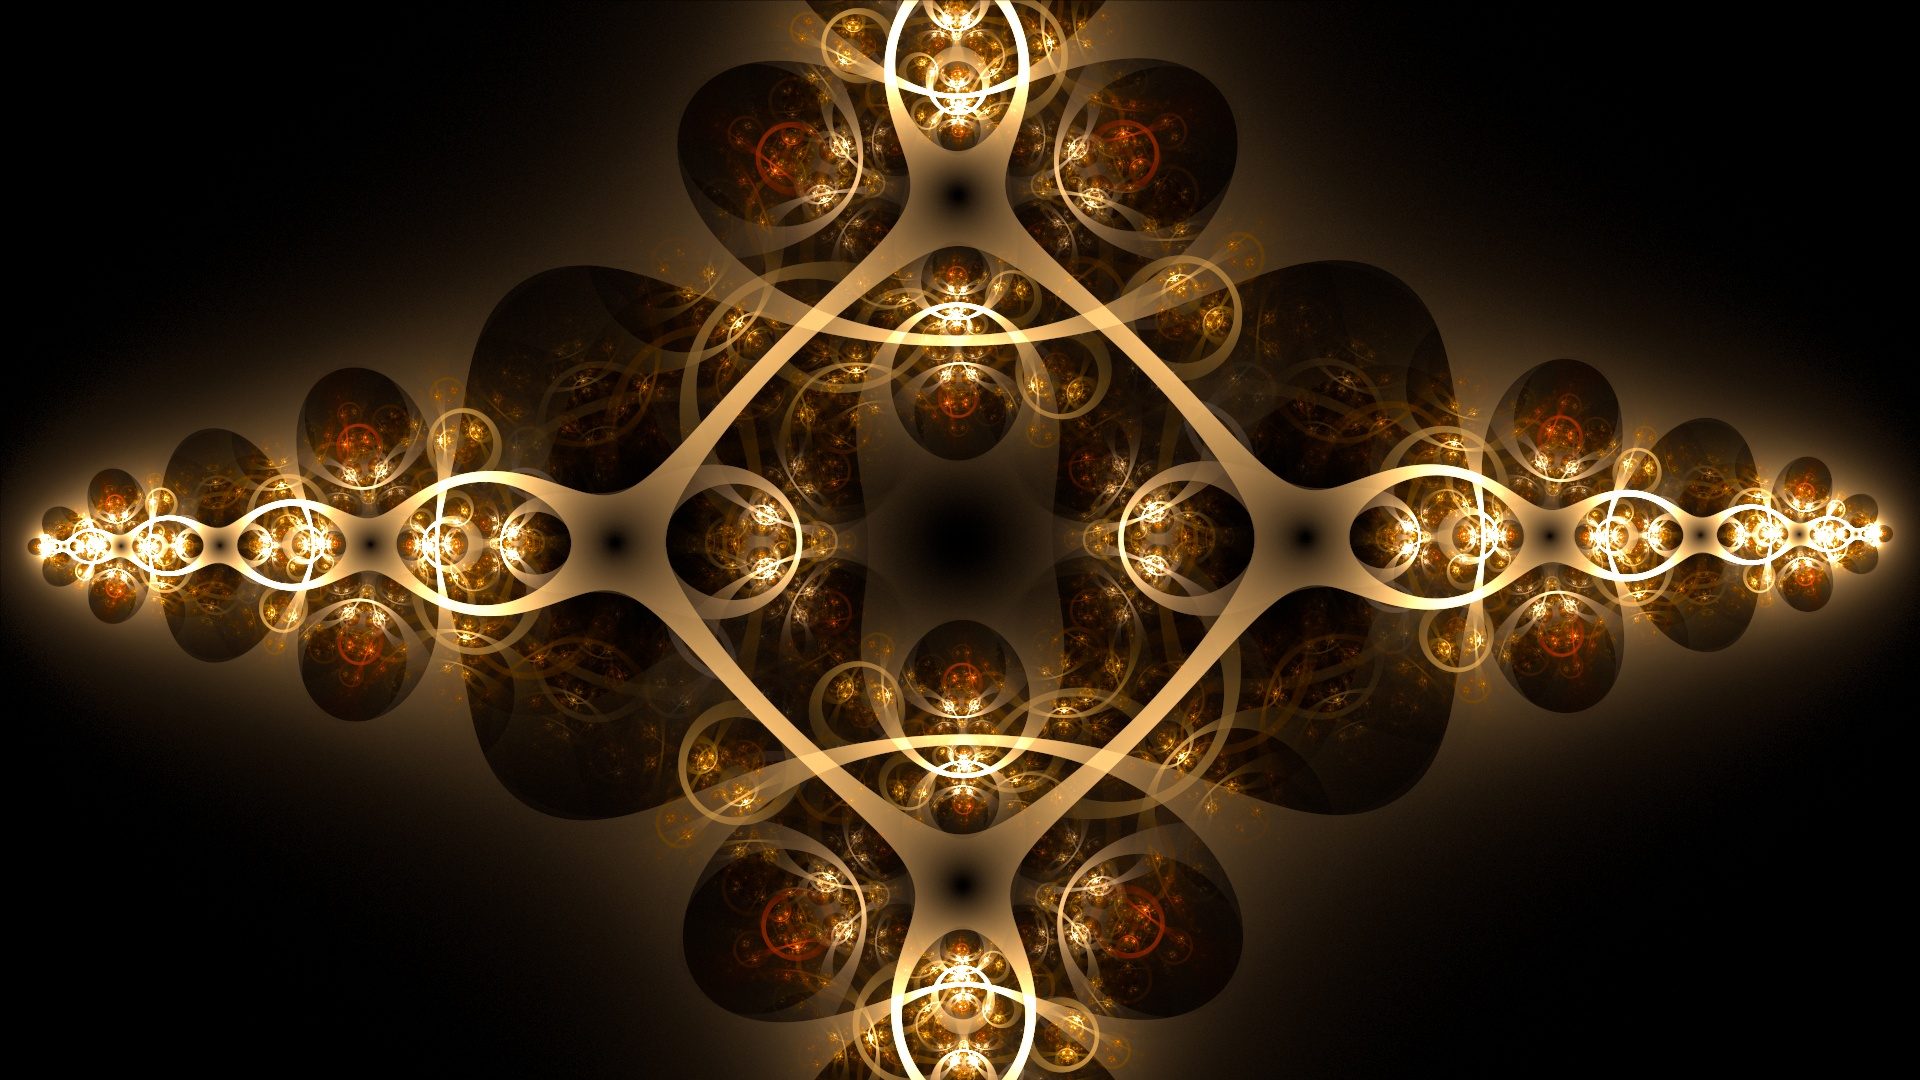 clockwork wallpaper pictures to pin on pinterest pinsdaddy